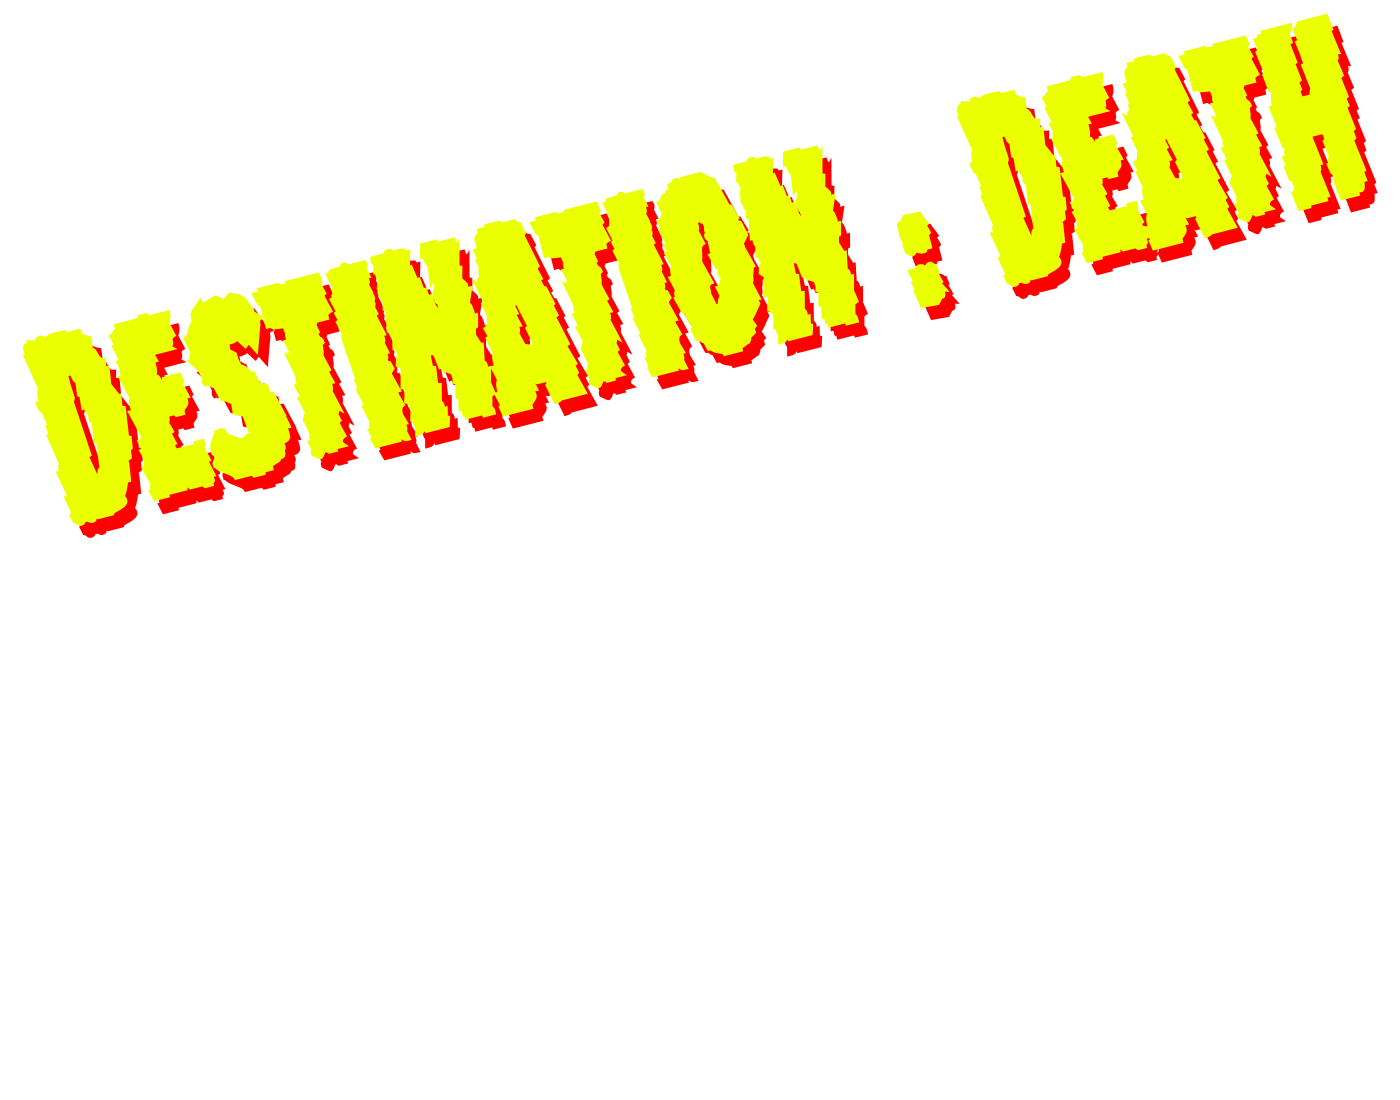 Destination : Death